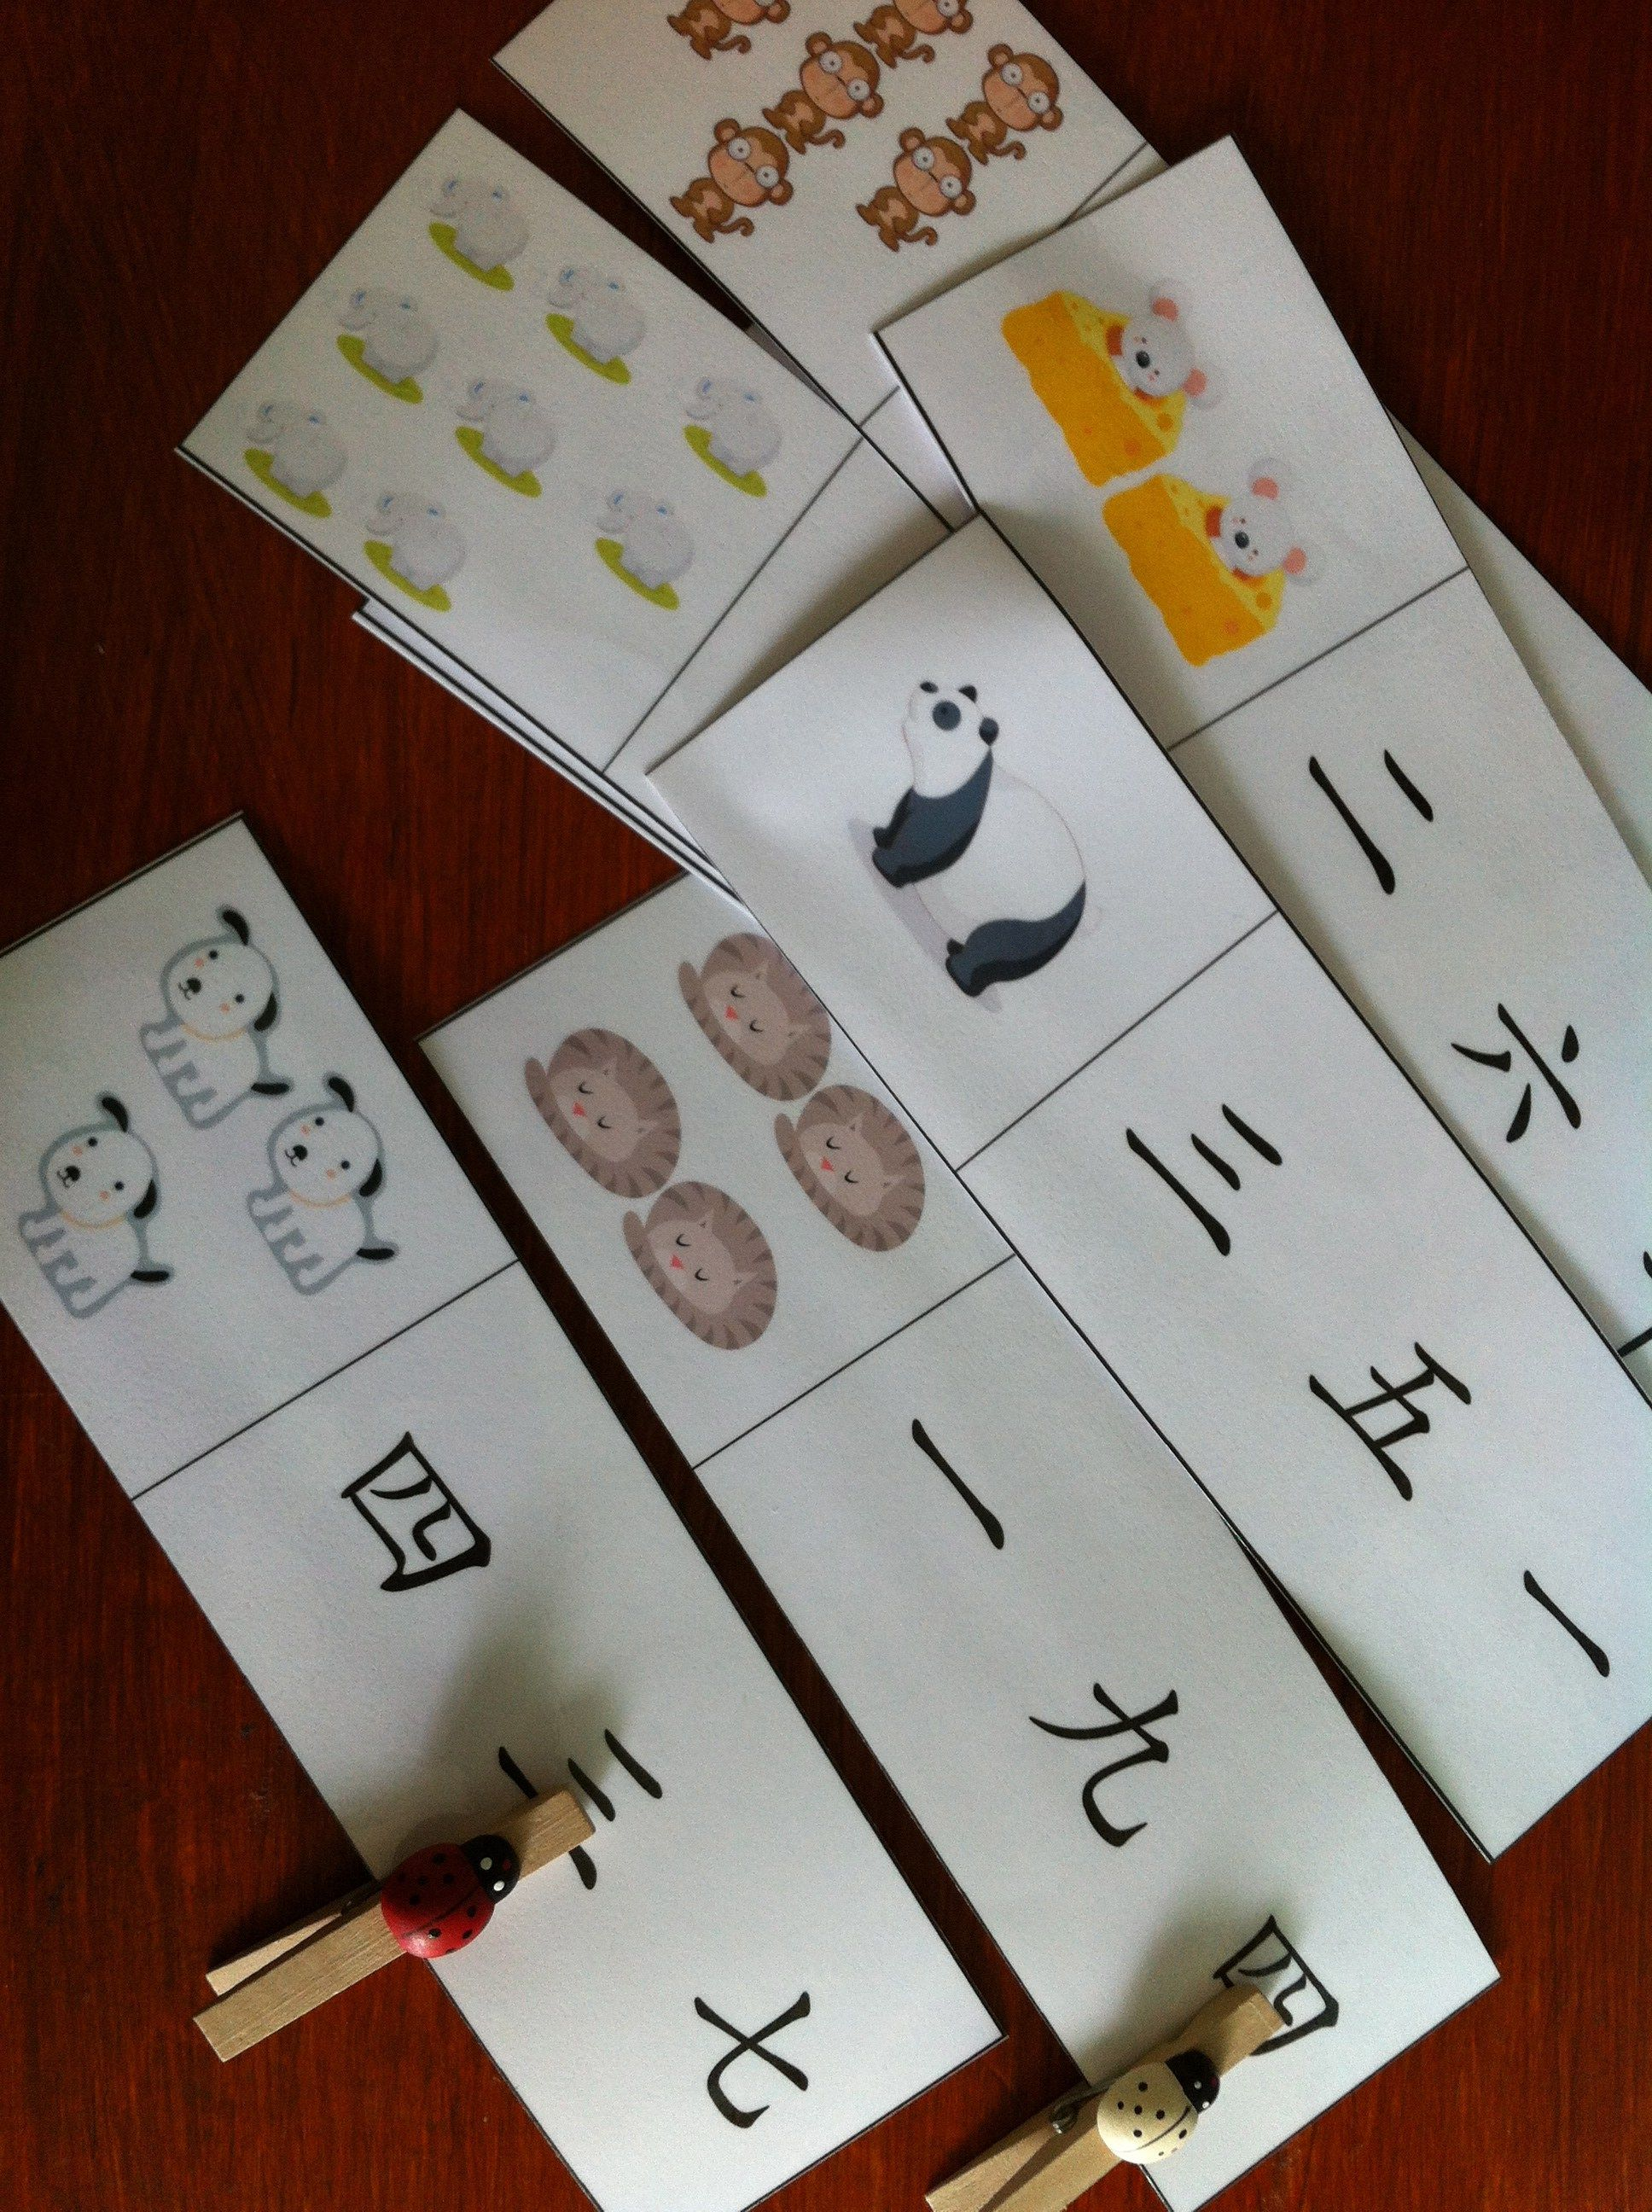 Chinese Numbers Match Printable Parentingjoy Mandarin Chinese Learning Chinese Lessons Learn Chinese [ 2592 x 1936 Pixel ]